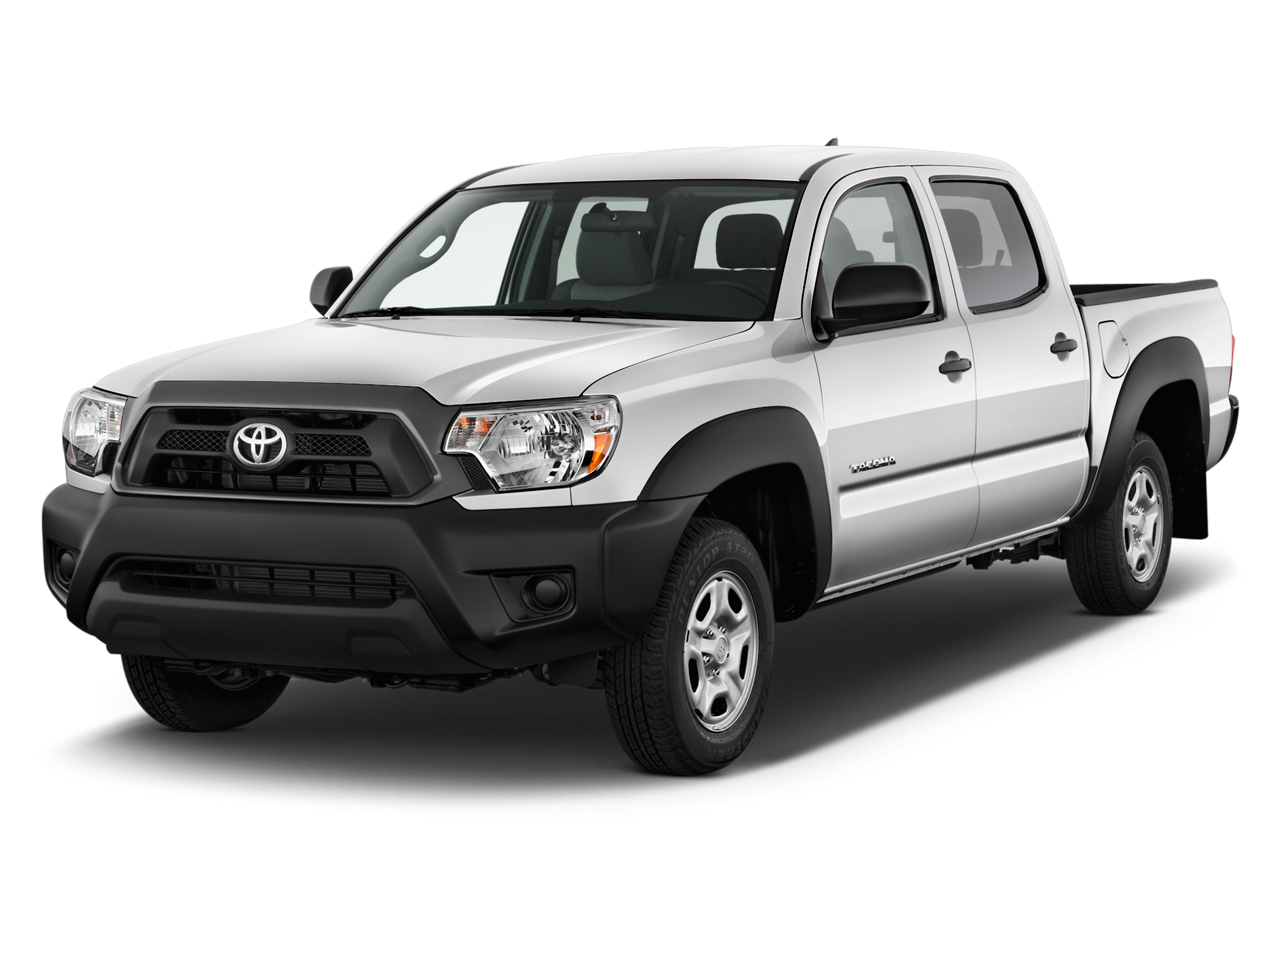 2012 Toyota Tacoma Review, Ratings, Specs, Prices, and Photos - The Car Connection